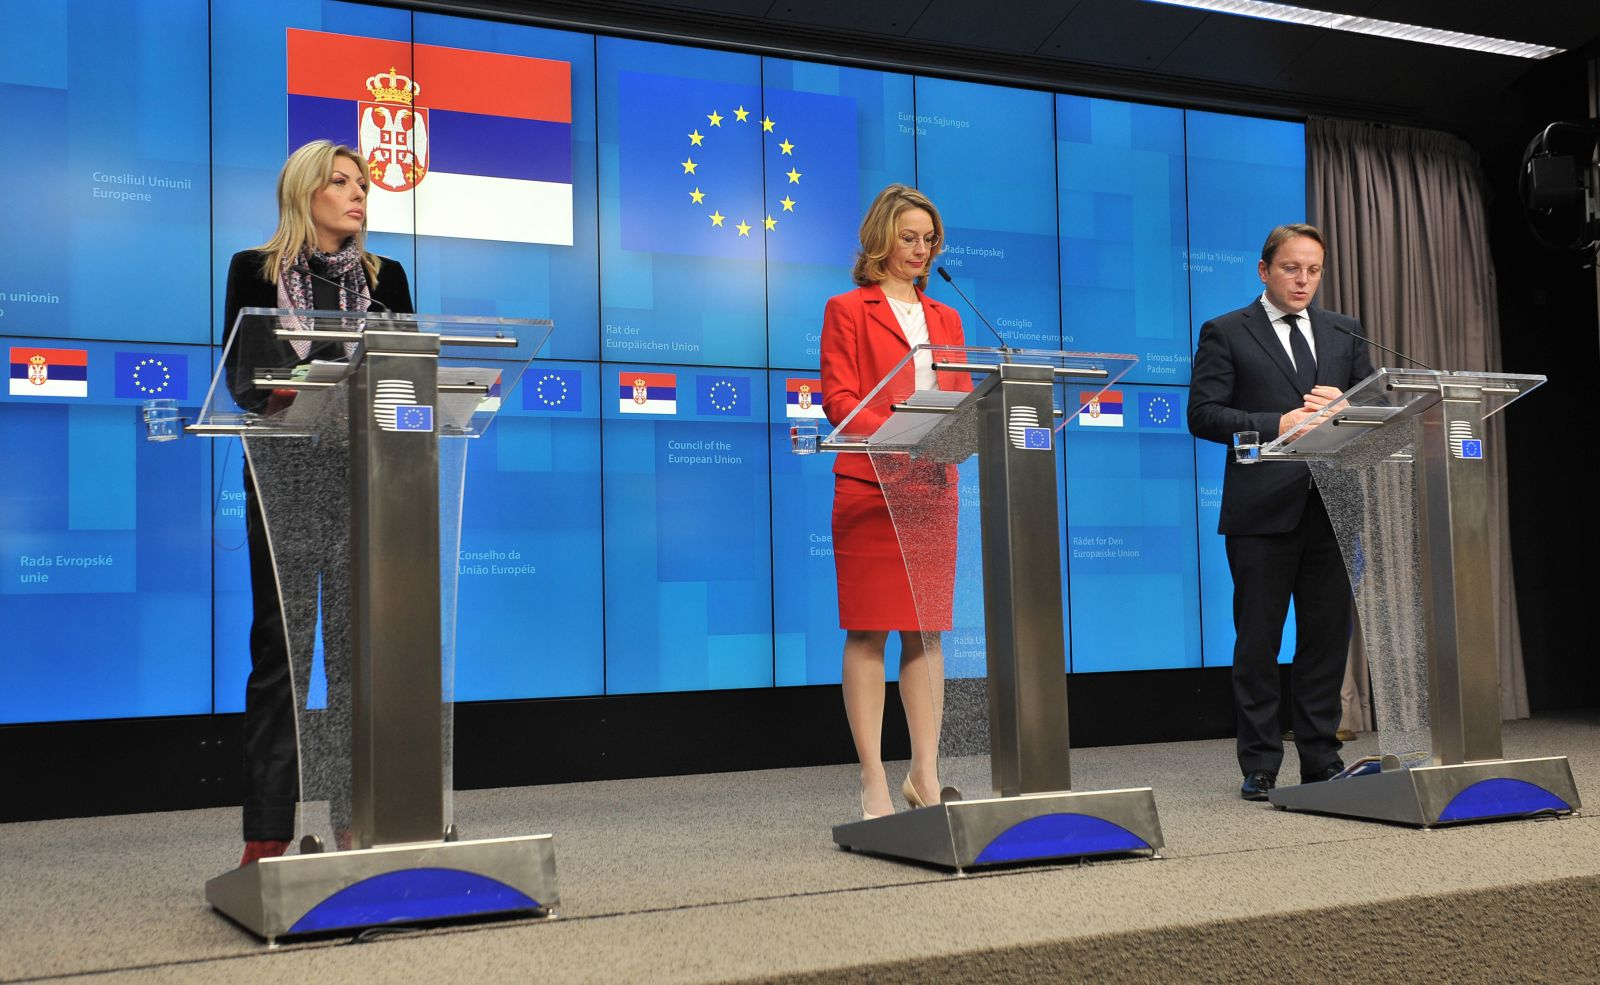 J. Joksimović: The opening of a chapter is proof that Serbia is implementing reforms